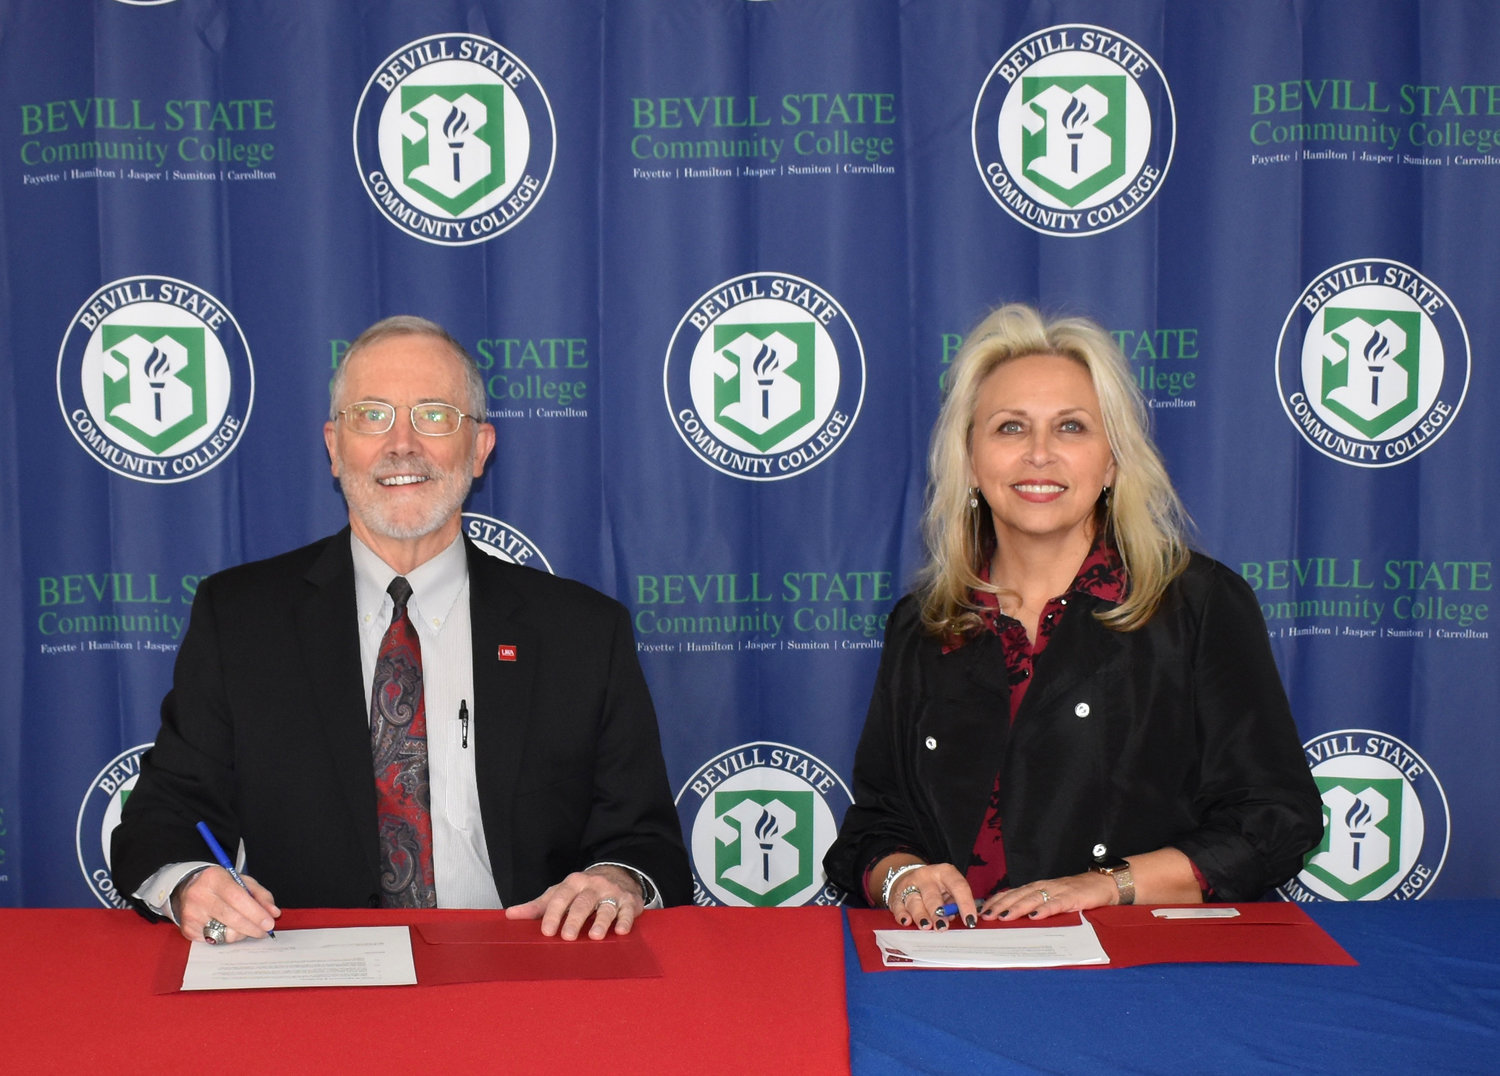 An agreement was recently signed between Bevill State Community College and the University of West Alabama. Pictured, from left to right, is Dr. Ken Tucker, president of UWA, and BSCC President Dr. Kim Ennis.